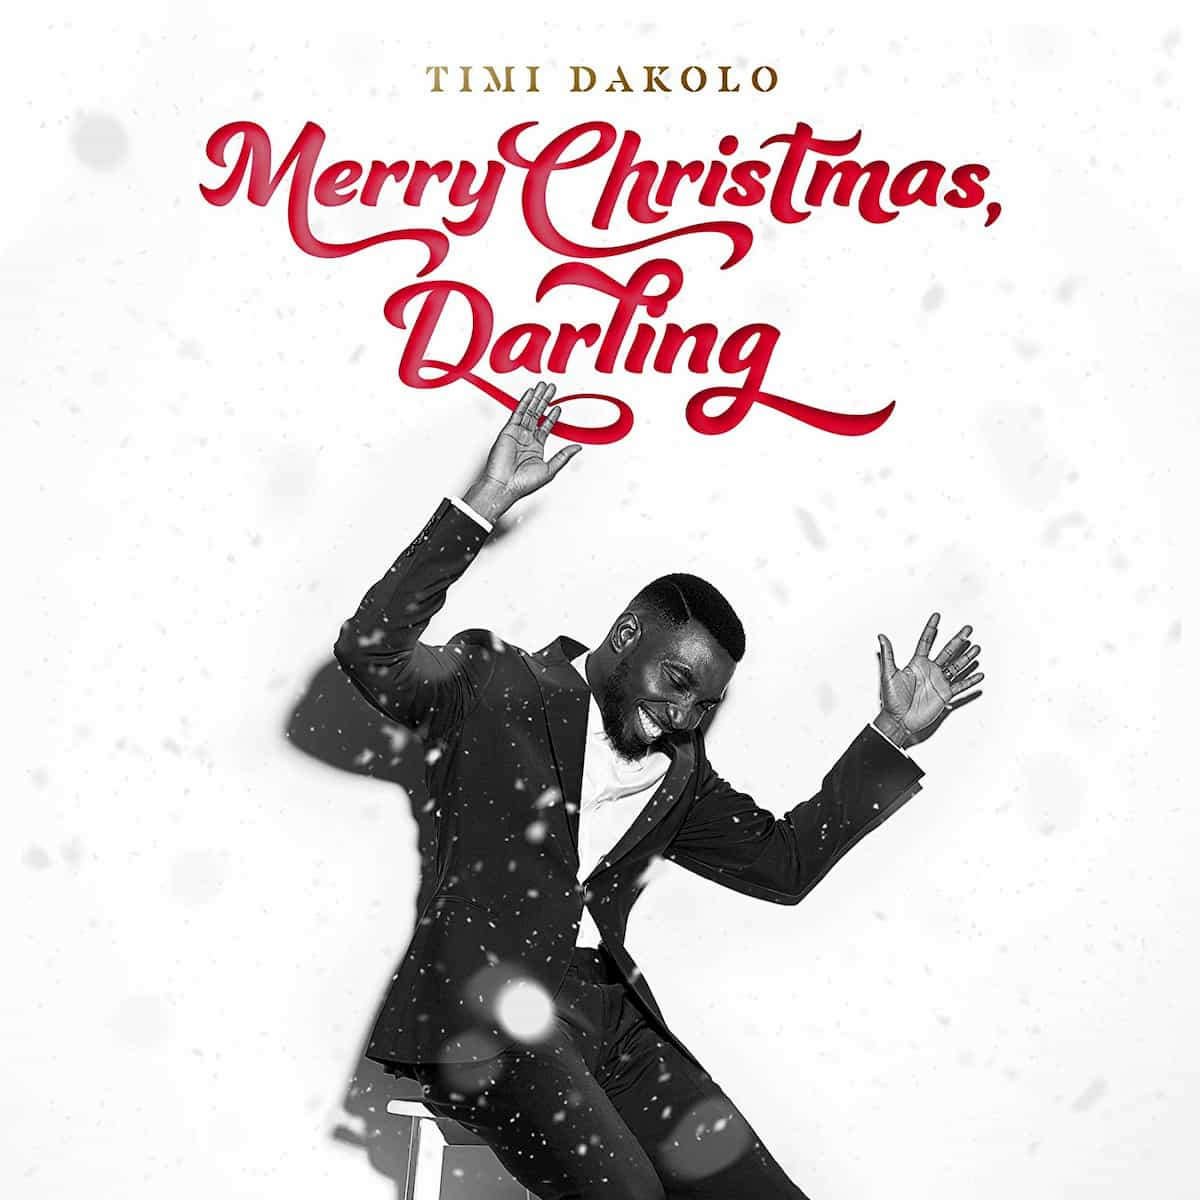 Timi Dakolo - Weihnachts-CD Merry Christmas Darling